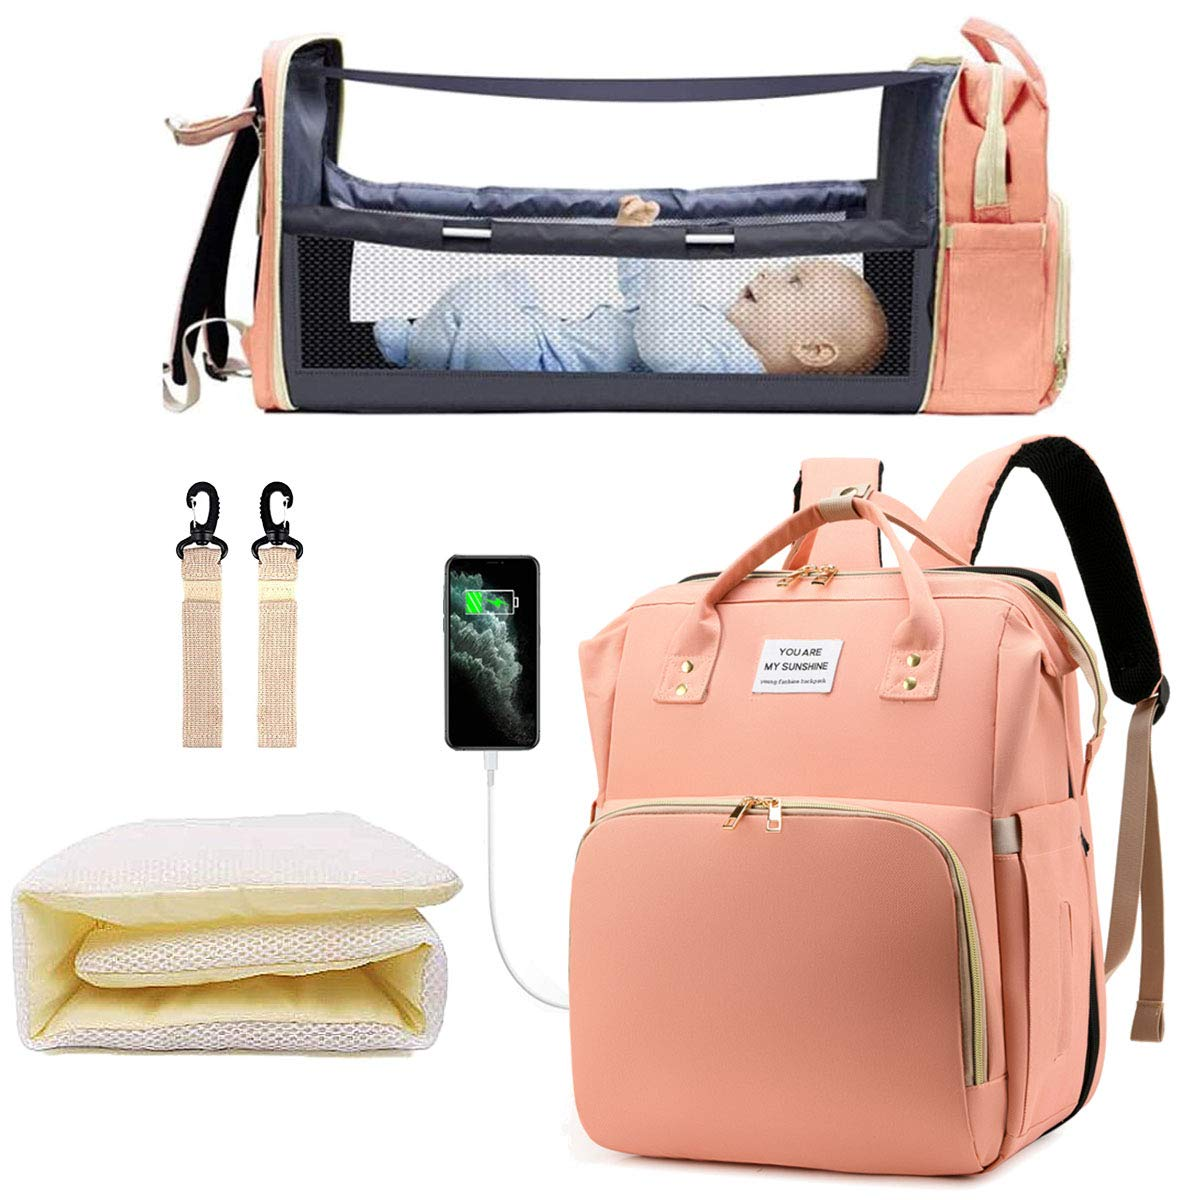 Diaper Bag Backpack with Changing Station, Baby Registry Search Gift by Name, Portable Waterproof Mummy Bag with Extendable Folding Crib, Baby Must Haves Shower Gifts for Girls Boys Dad Mom (Pink)